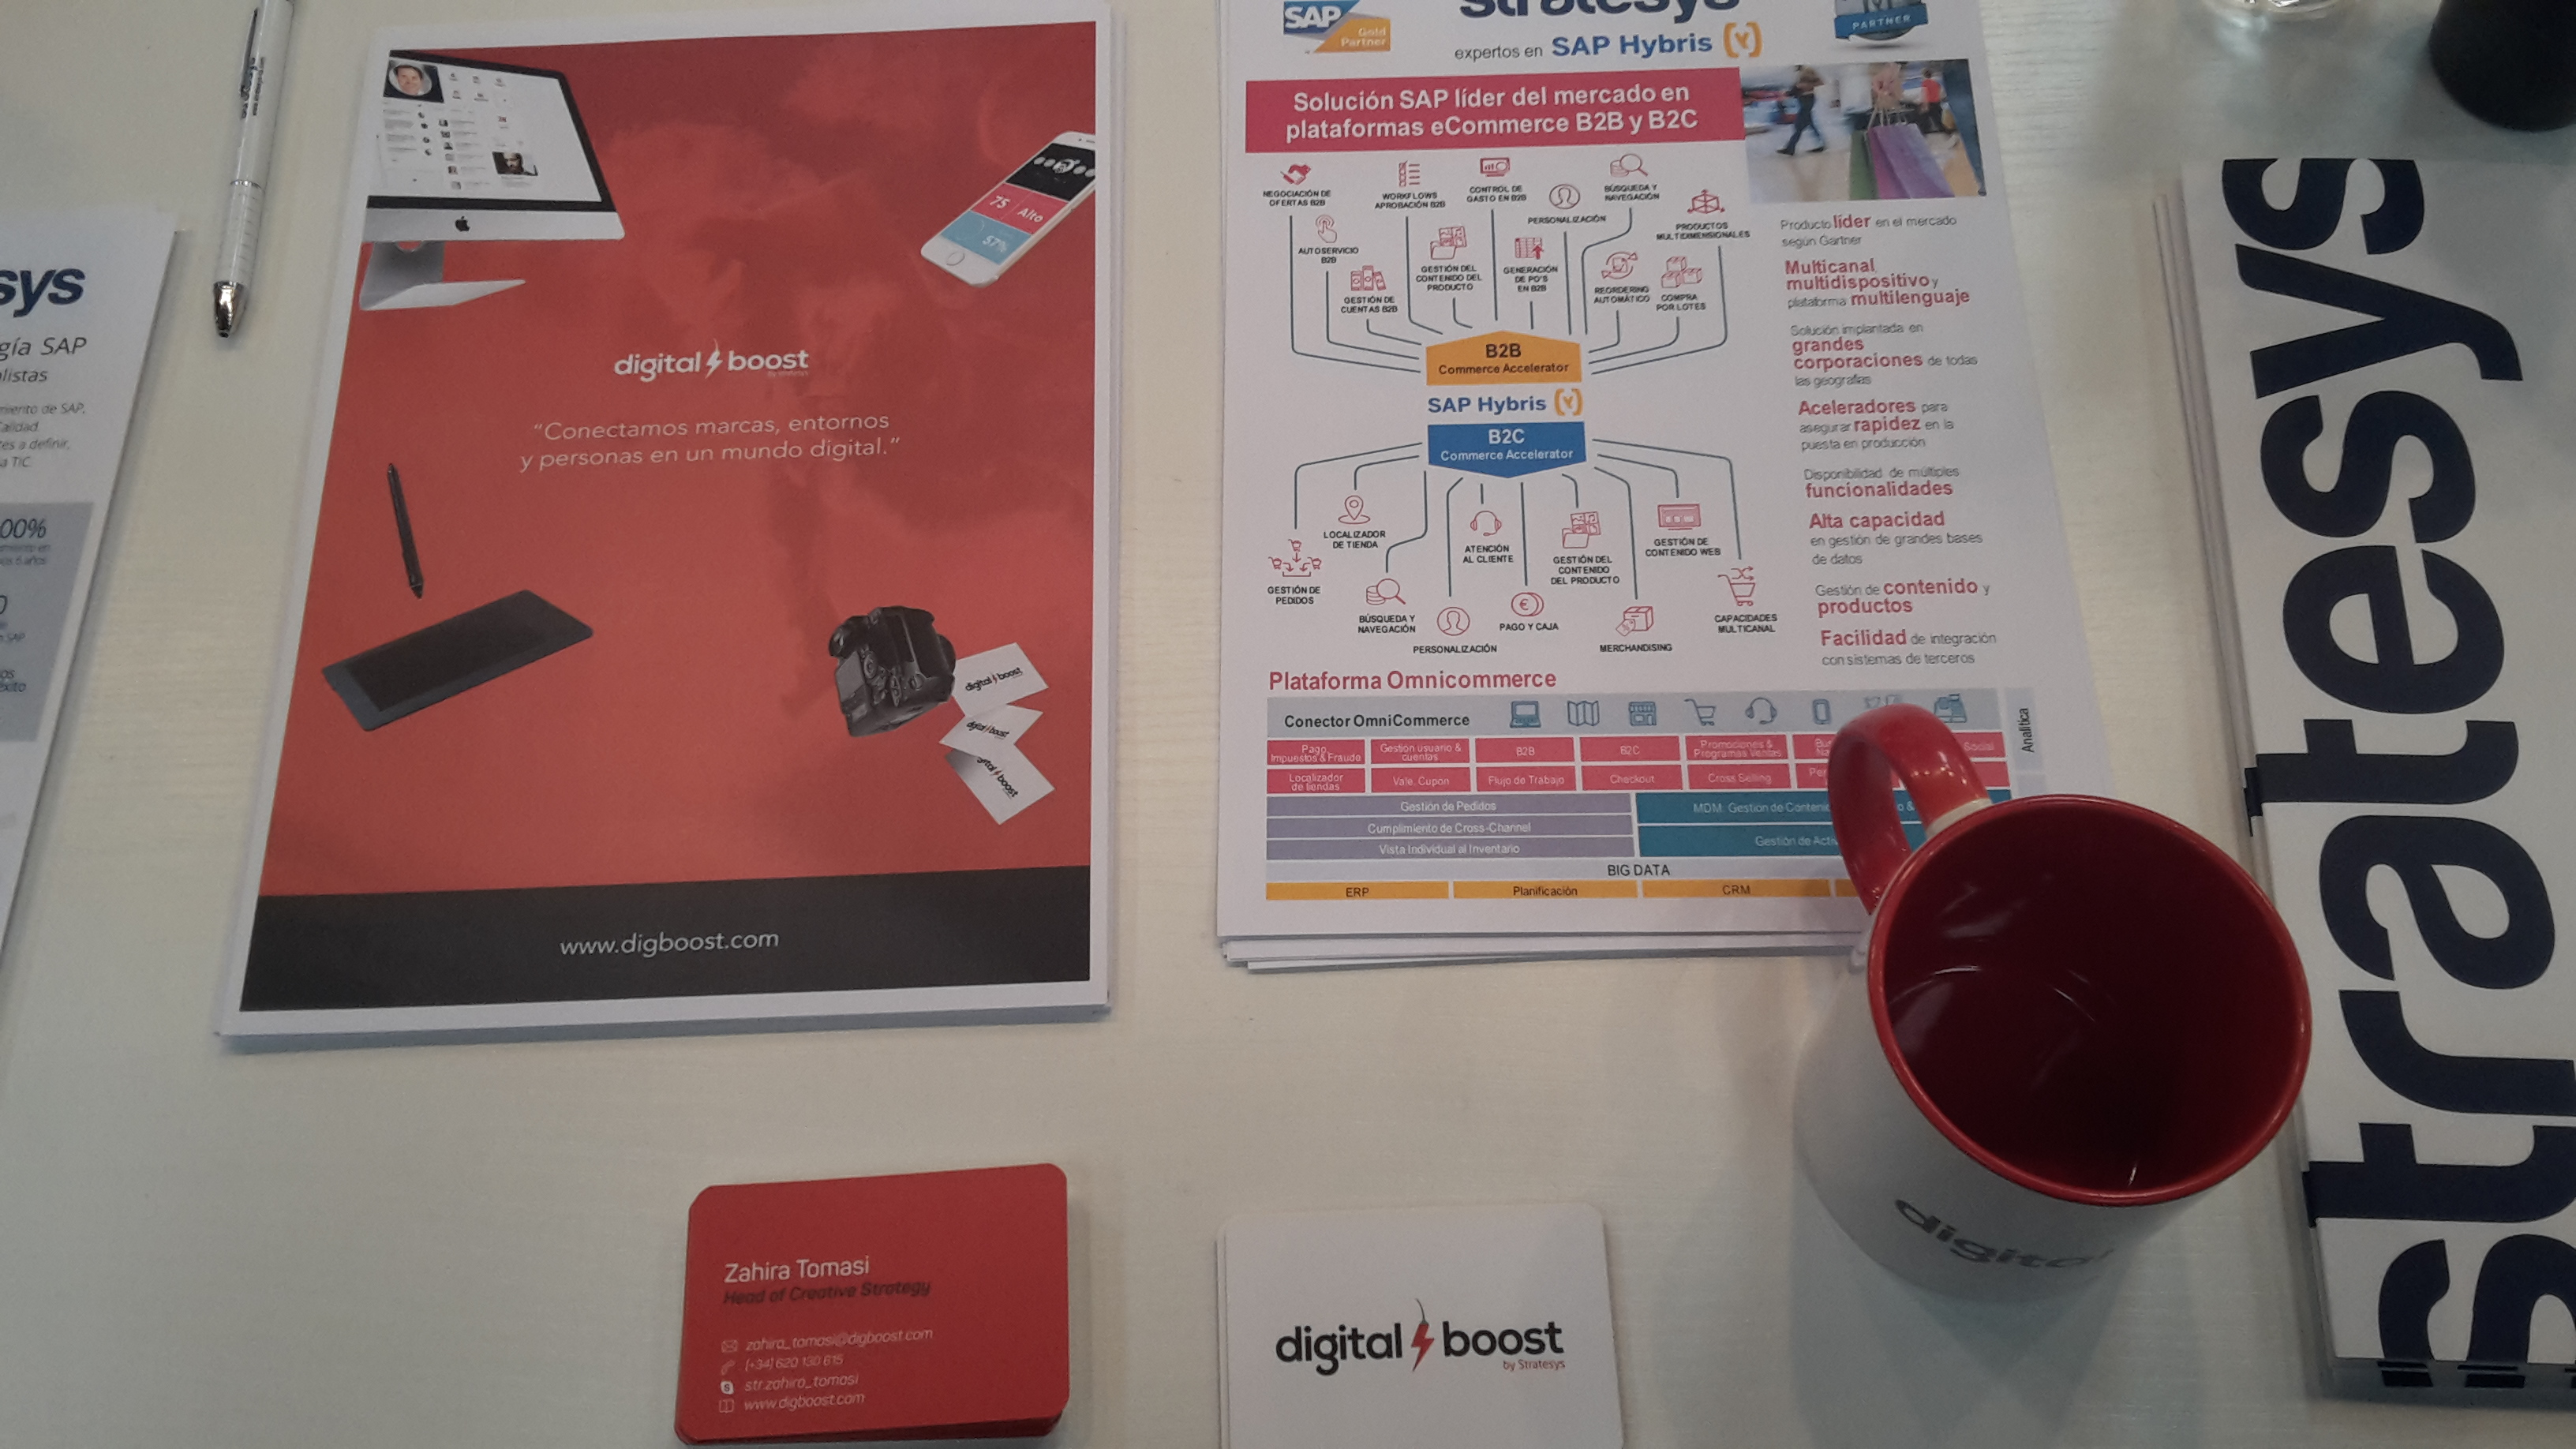 eShow Barcelona 2016 Digital Boost